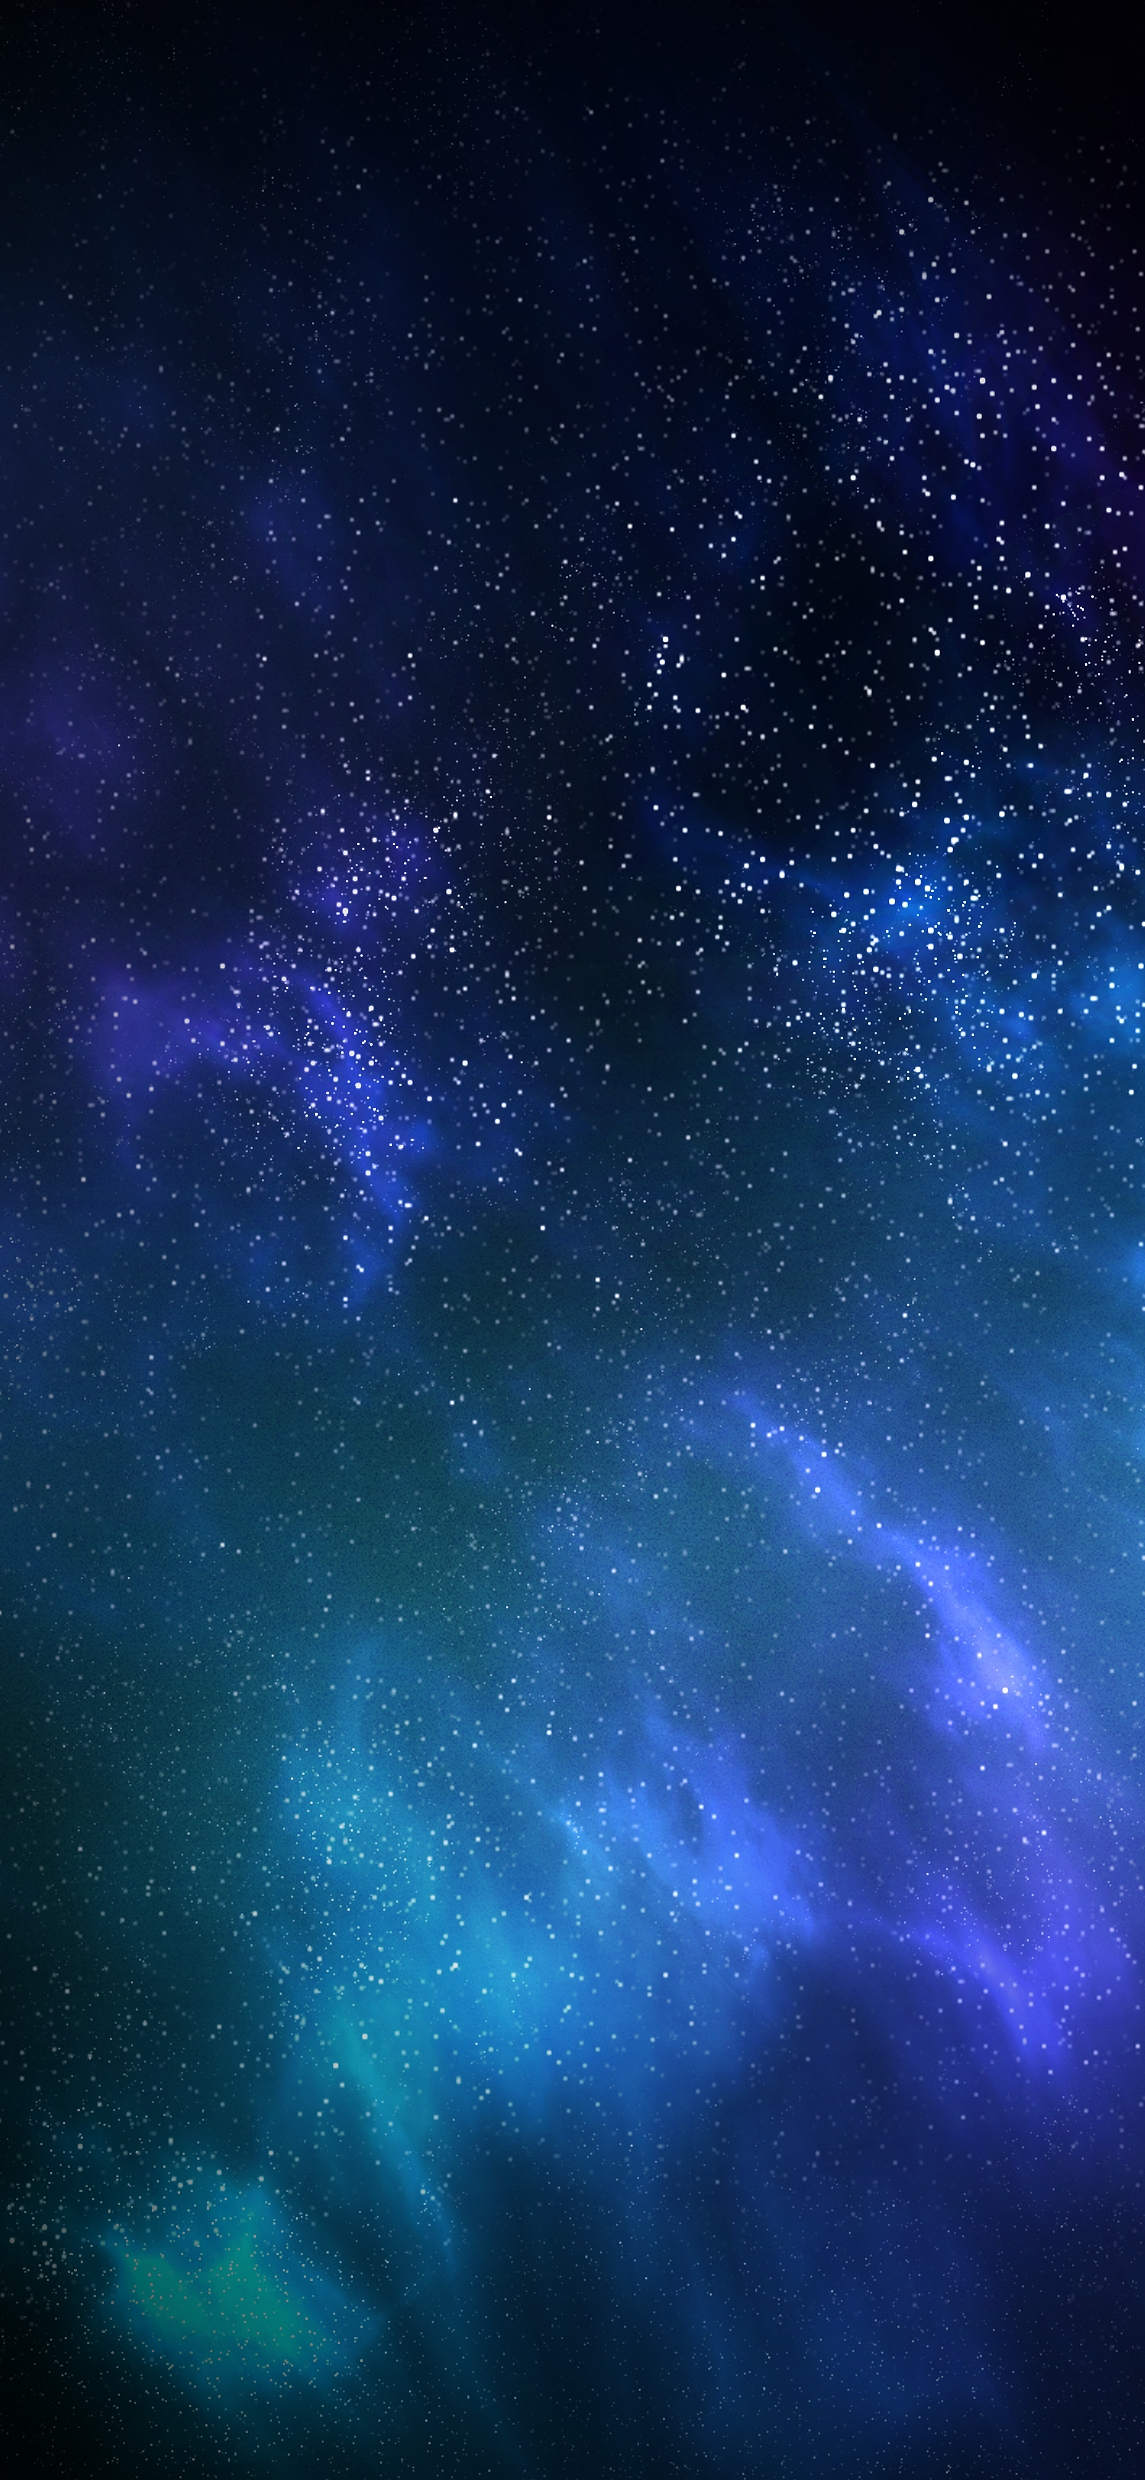 IPHONE 13 WALLPAPER CLEAN GALAXY SKY